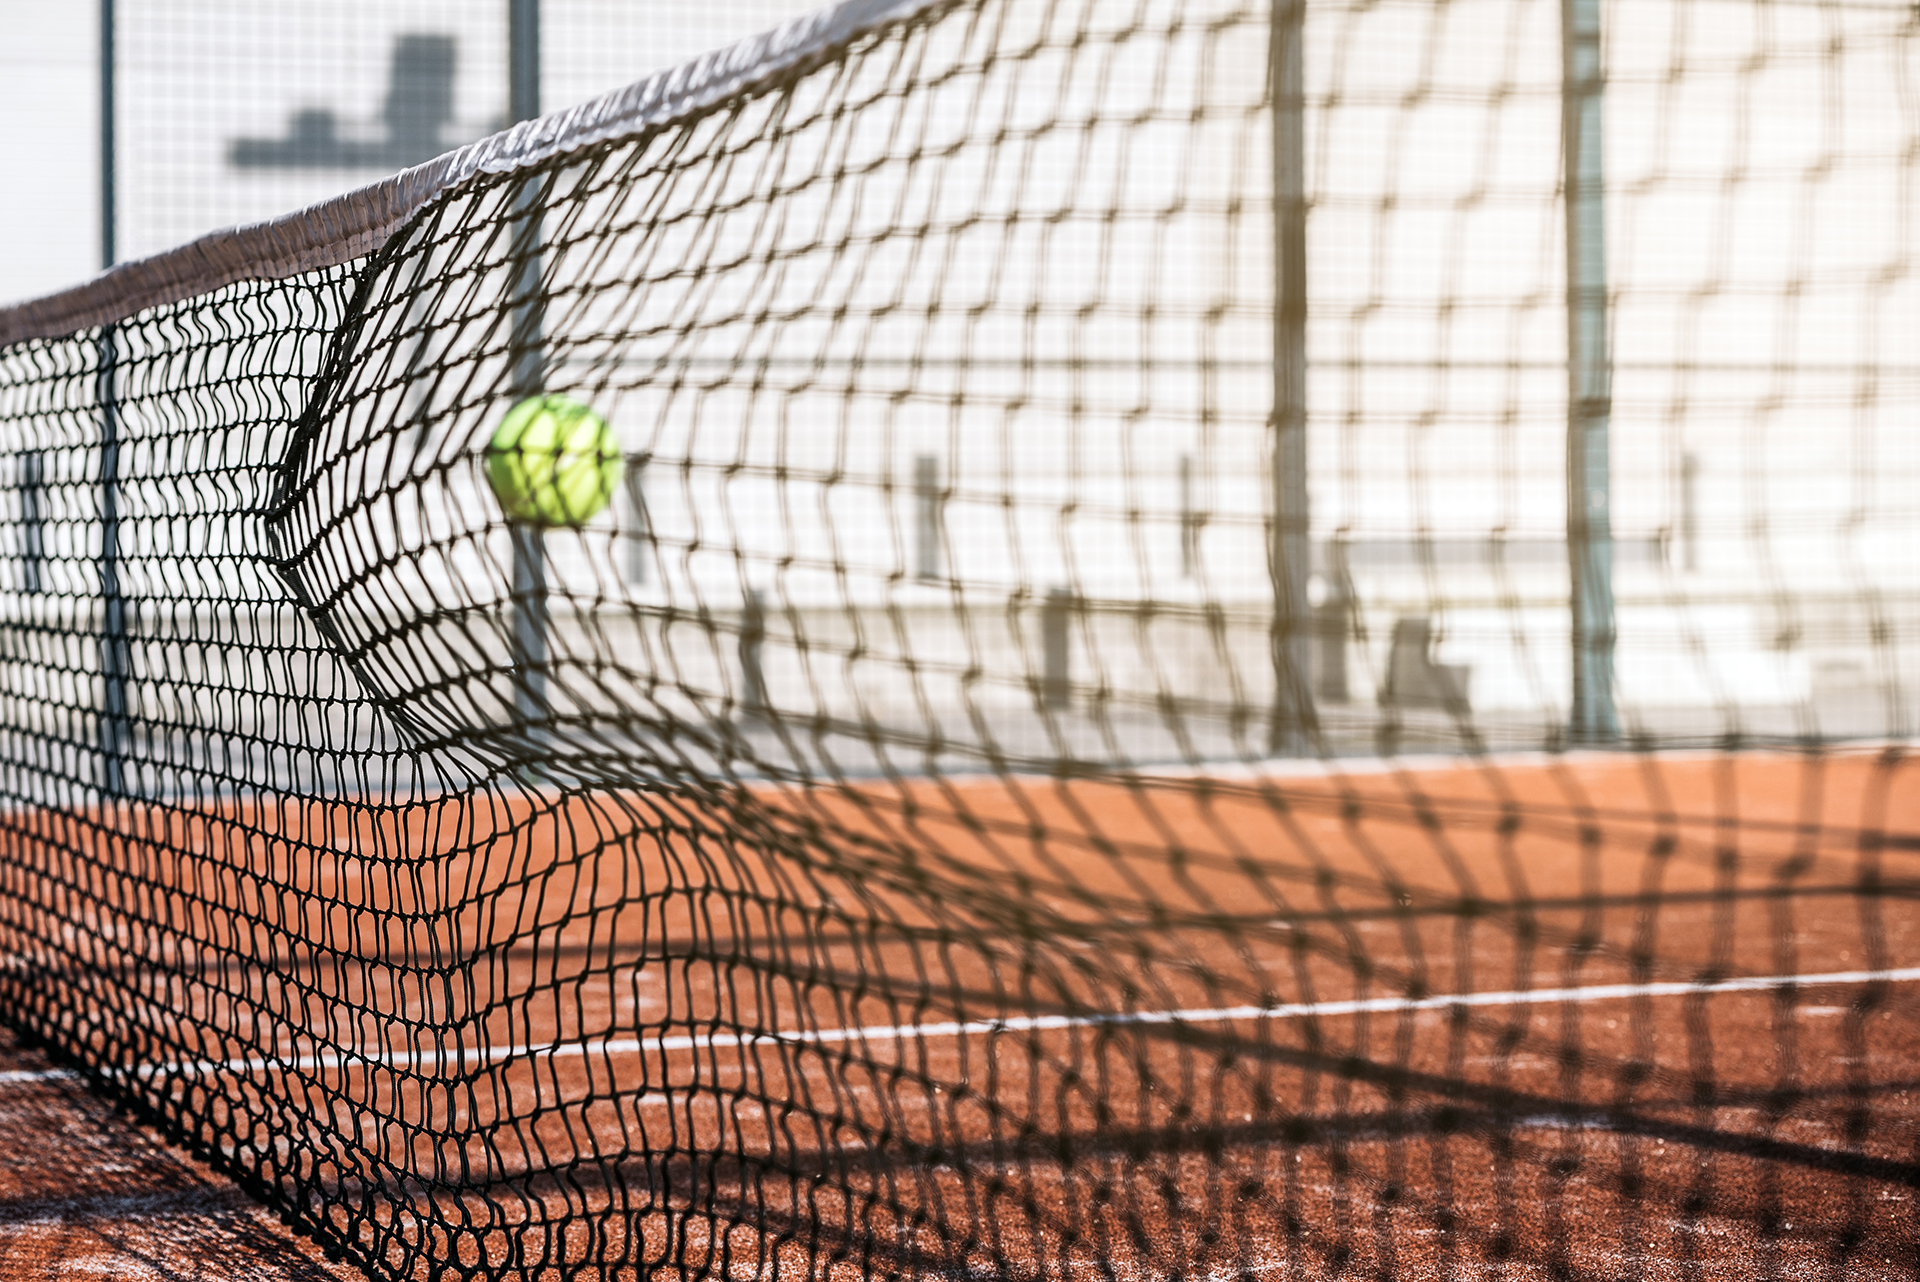 ball in net in a padel court with orange grass